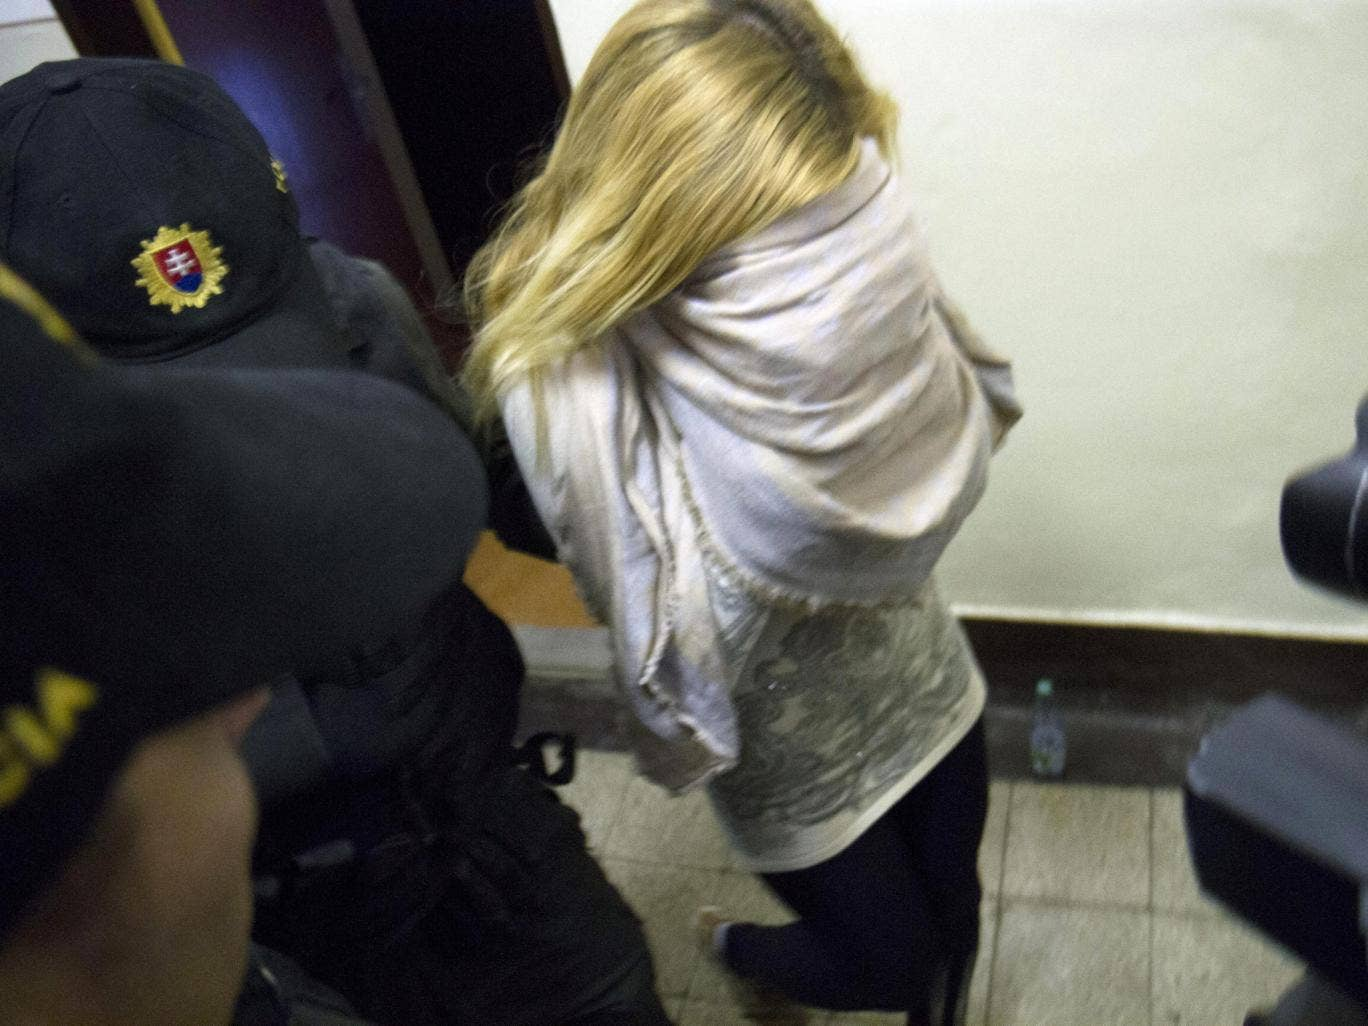 Slovakian model Mayka Marica Kukucova is escorted by the police from the Regional Court in Trencin, Slovakia